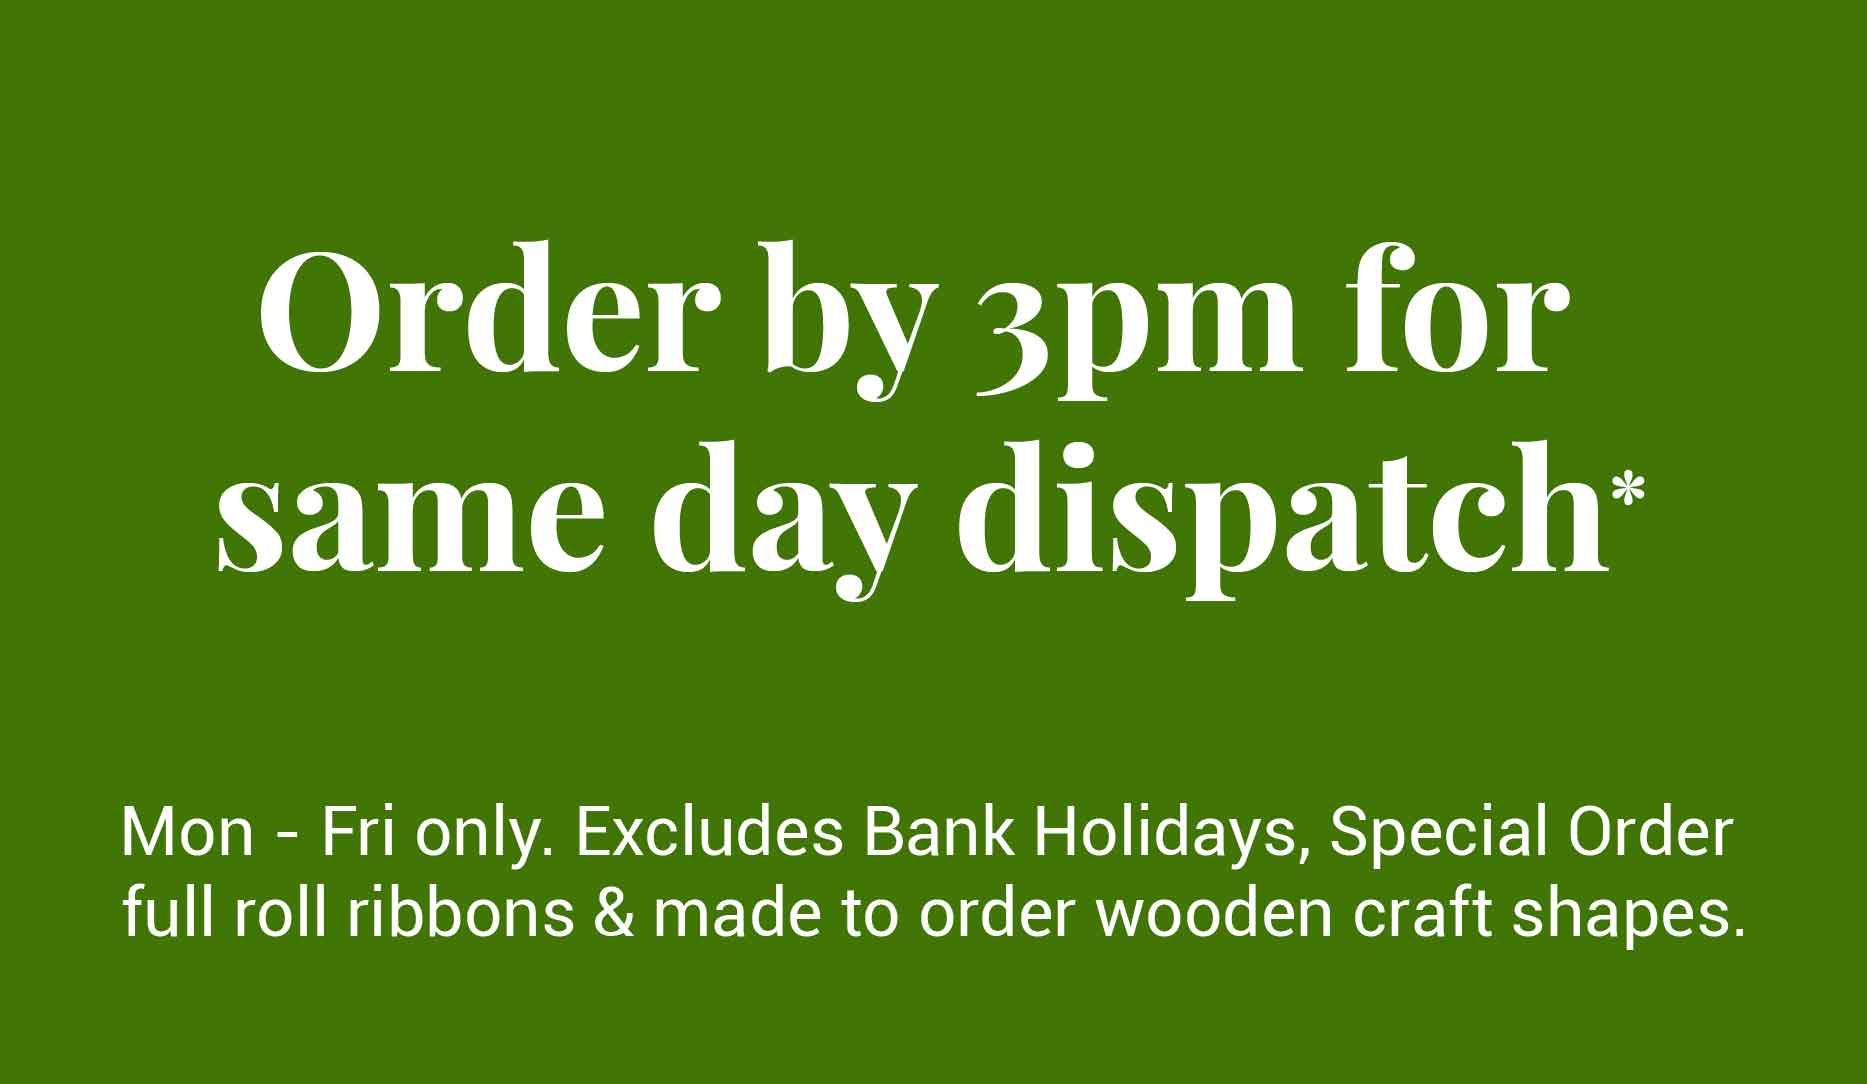 Same Day Dispatch on selected orders received before 3pm Mon-Fri.